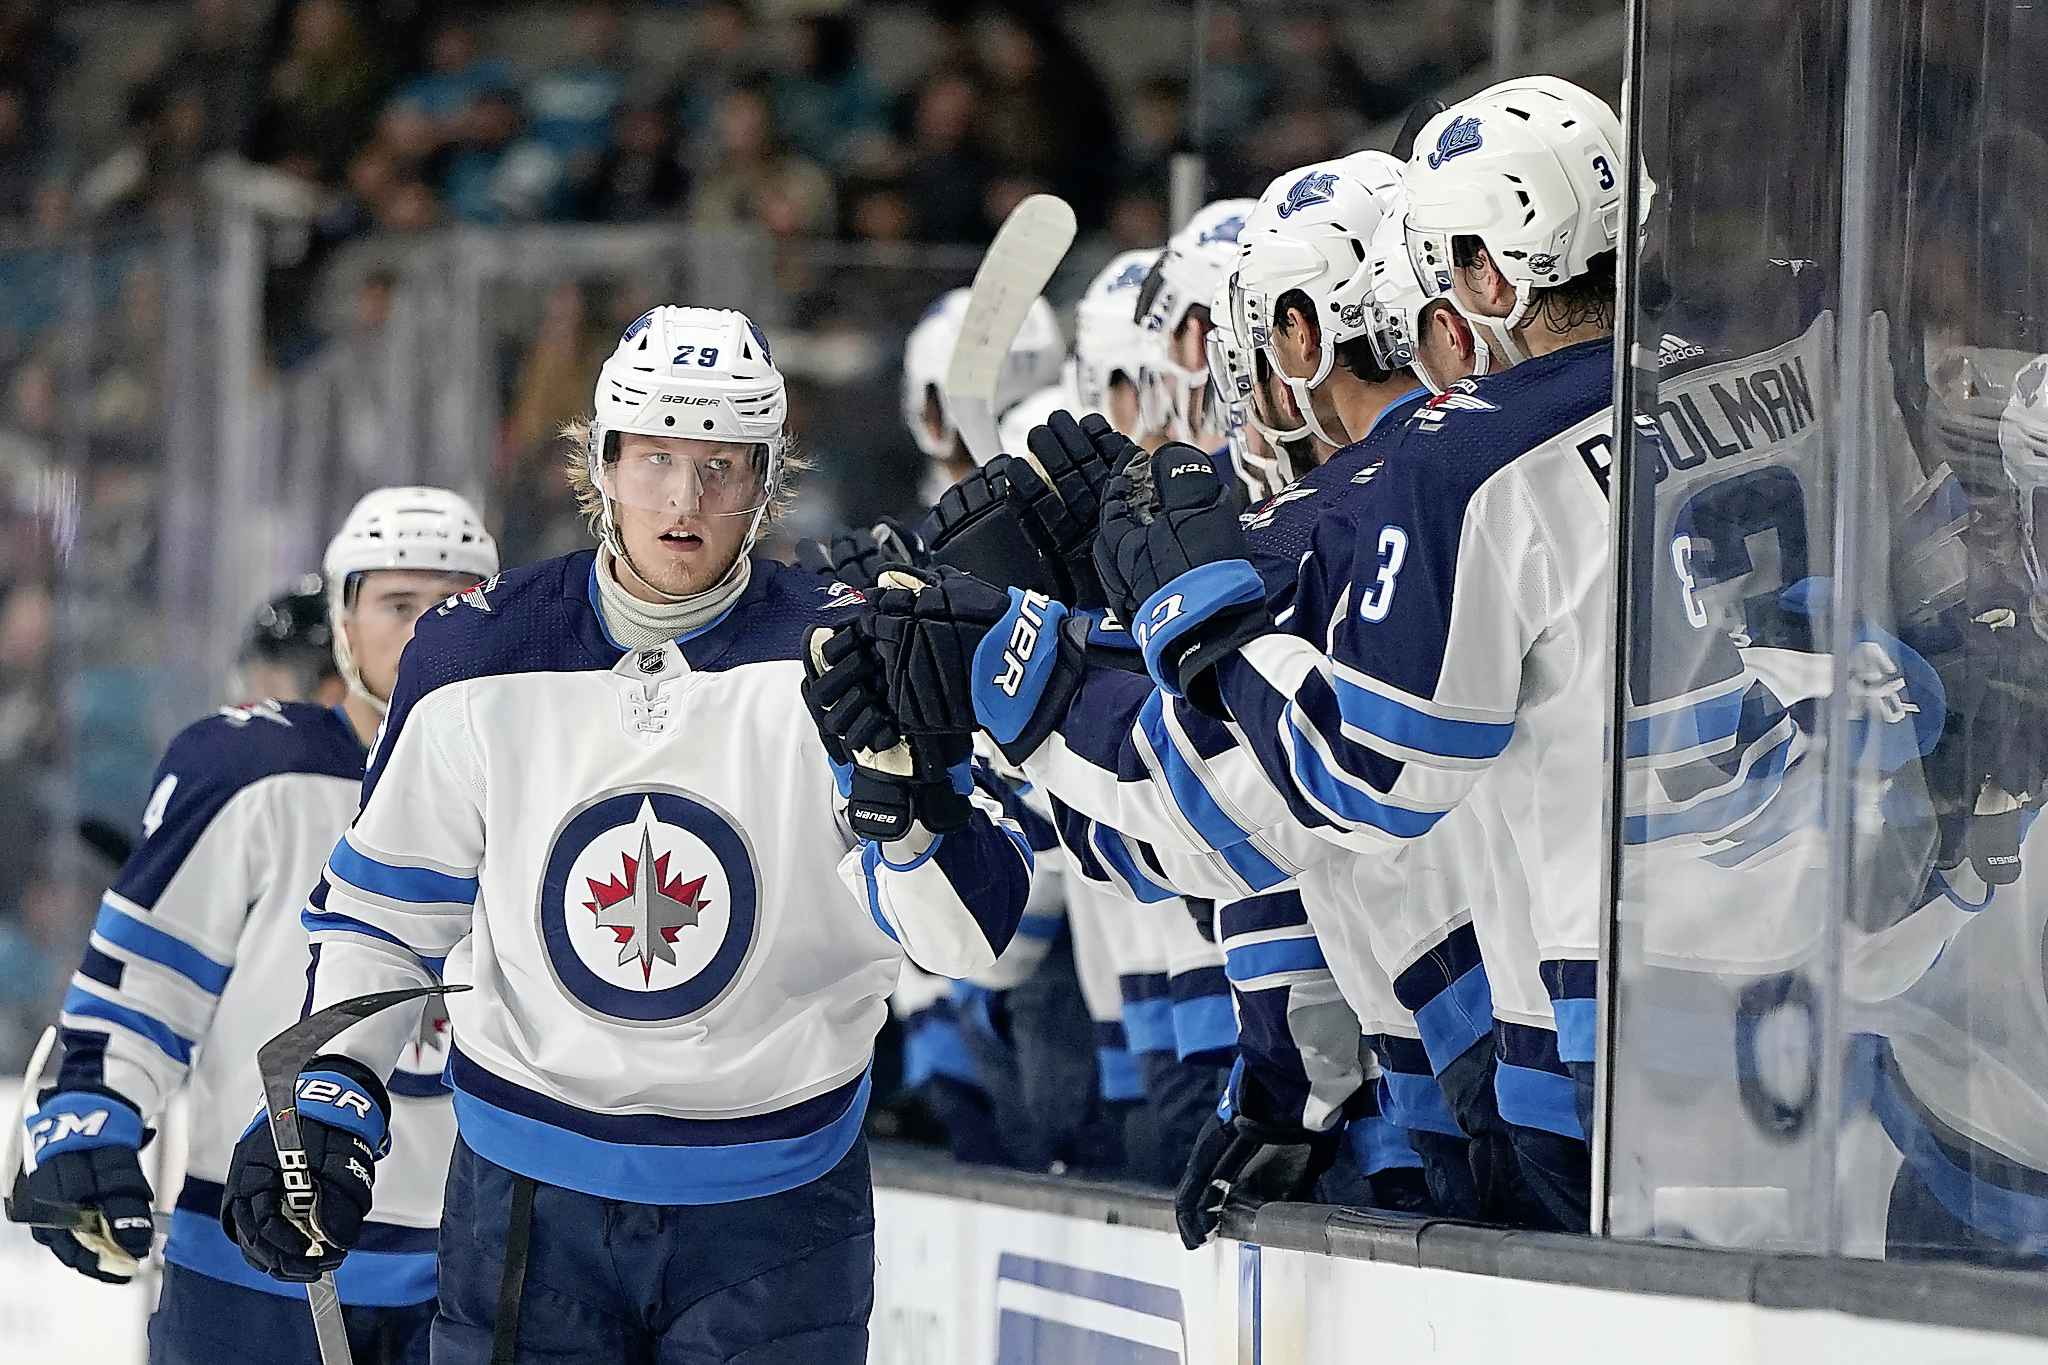 Winnipeg Jets right wing Patrik Laine is congratulated by teammates after scoring a power play goal against the Sharks during the first period Wednesday.